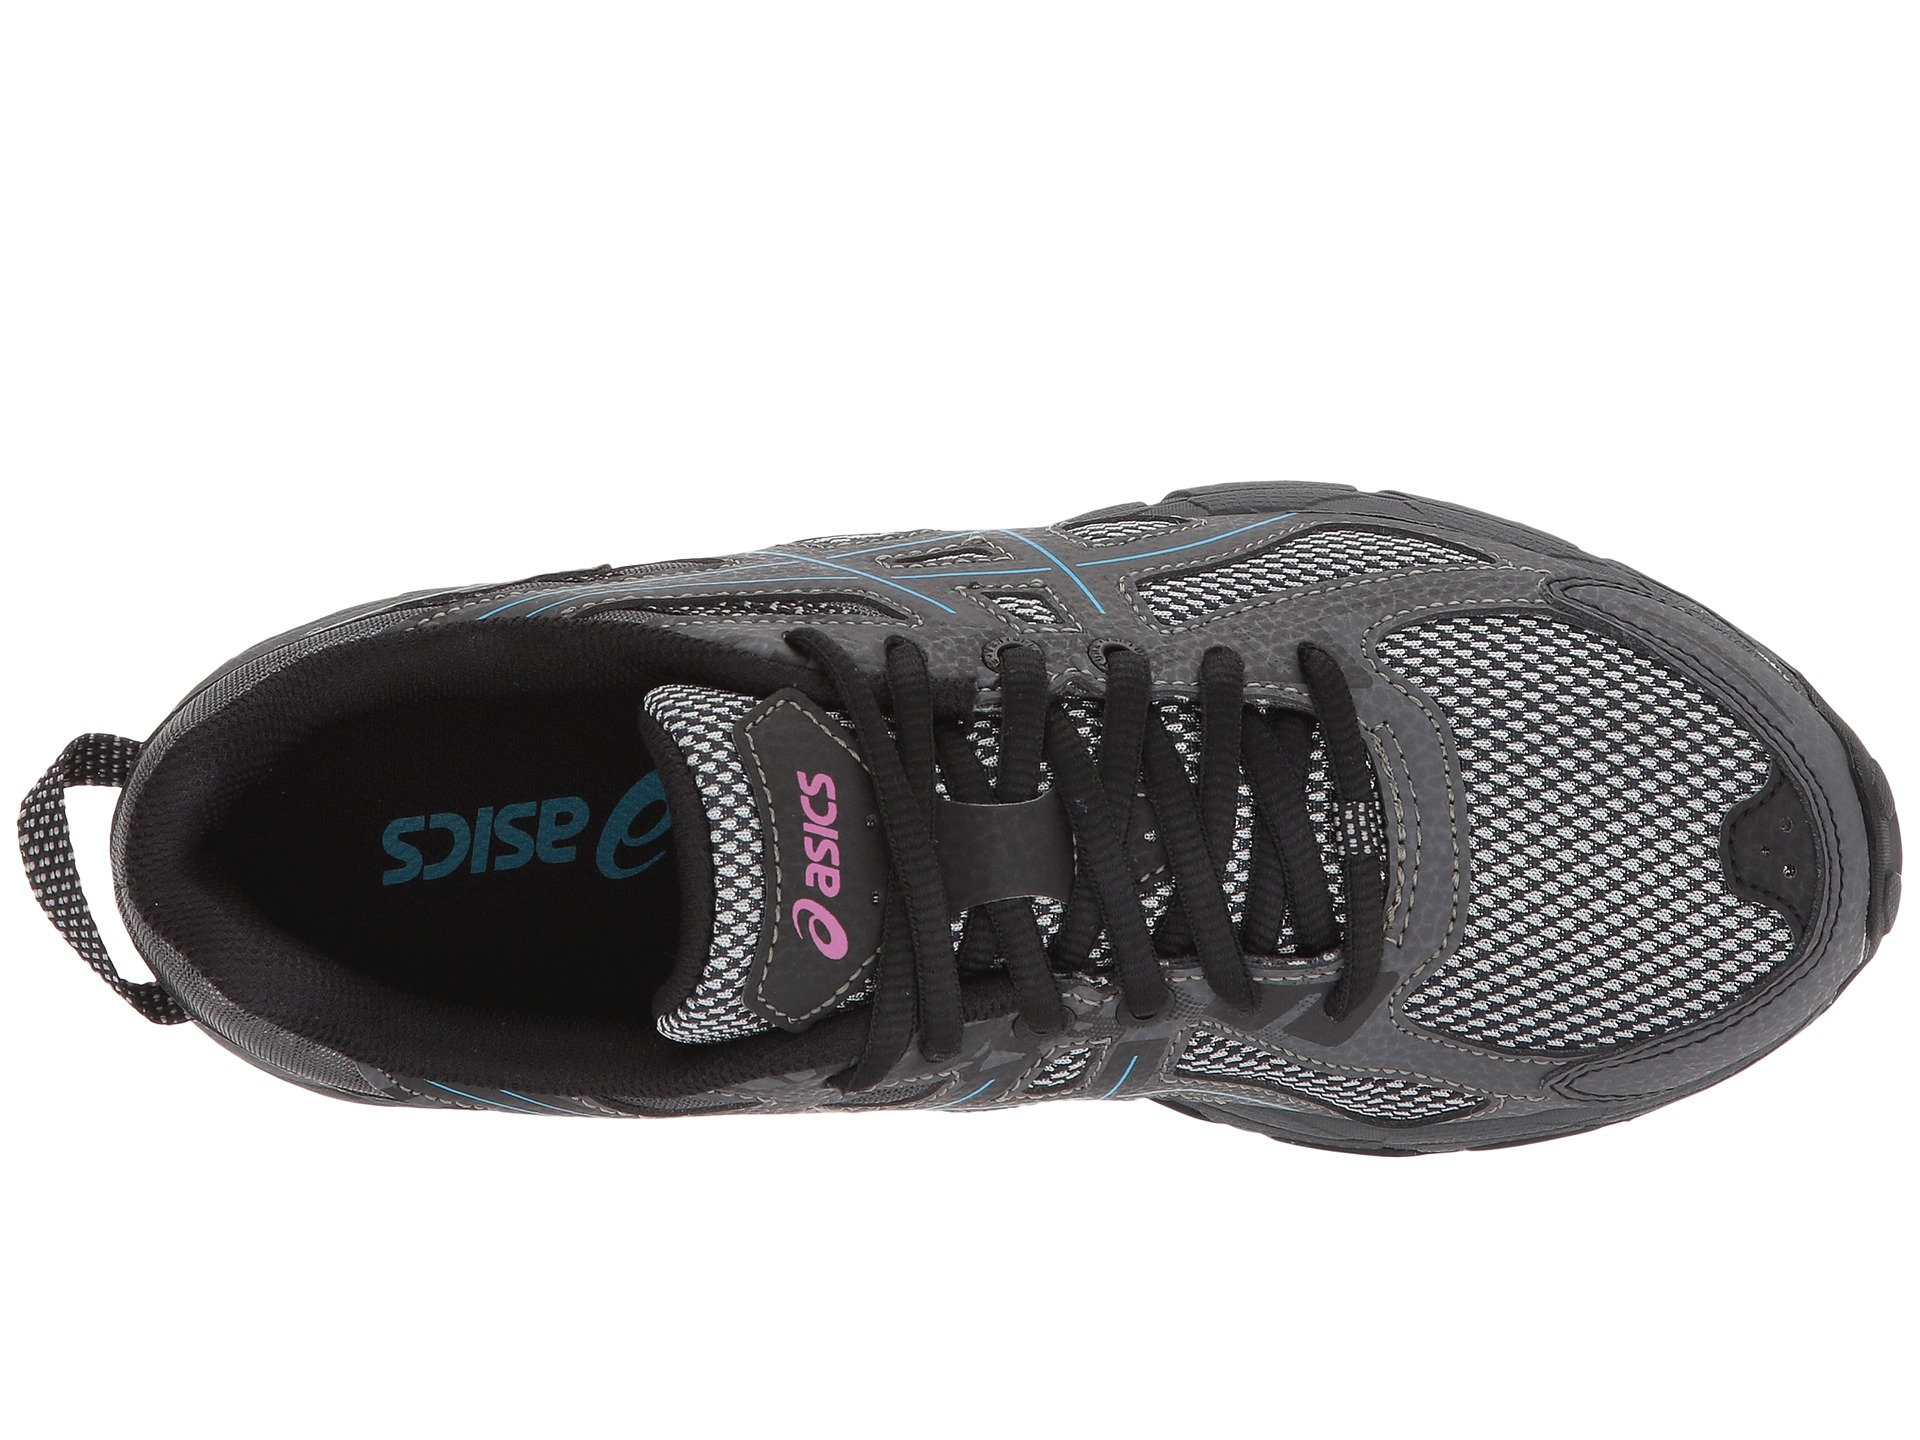 ASICS Womens Gel-Venture 6 Black/Island Blue/Pink 5 B US by ASICS (Image #9)